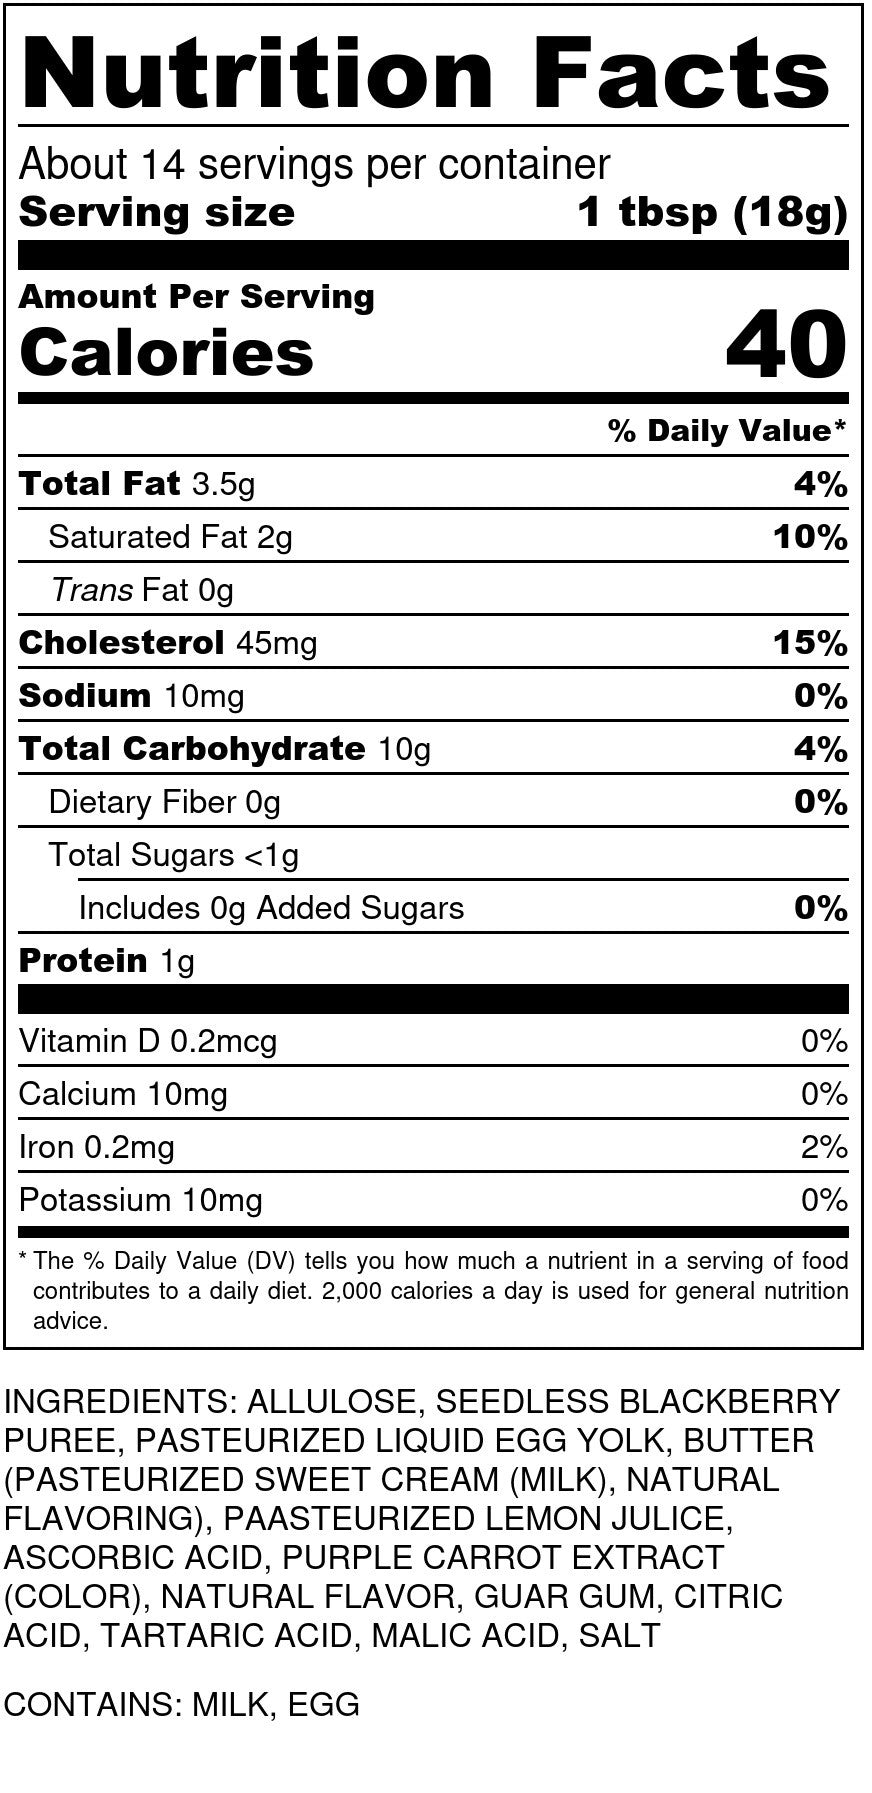 Blackberry Curd Nutrition Facts